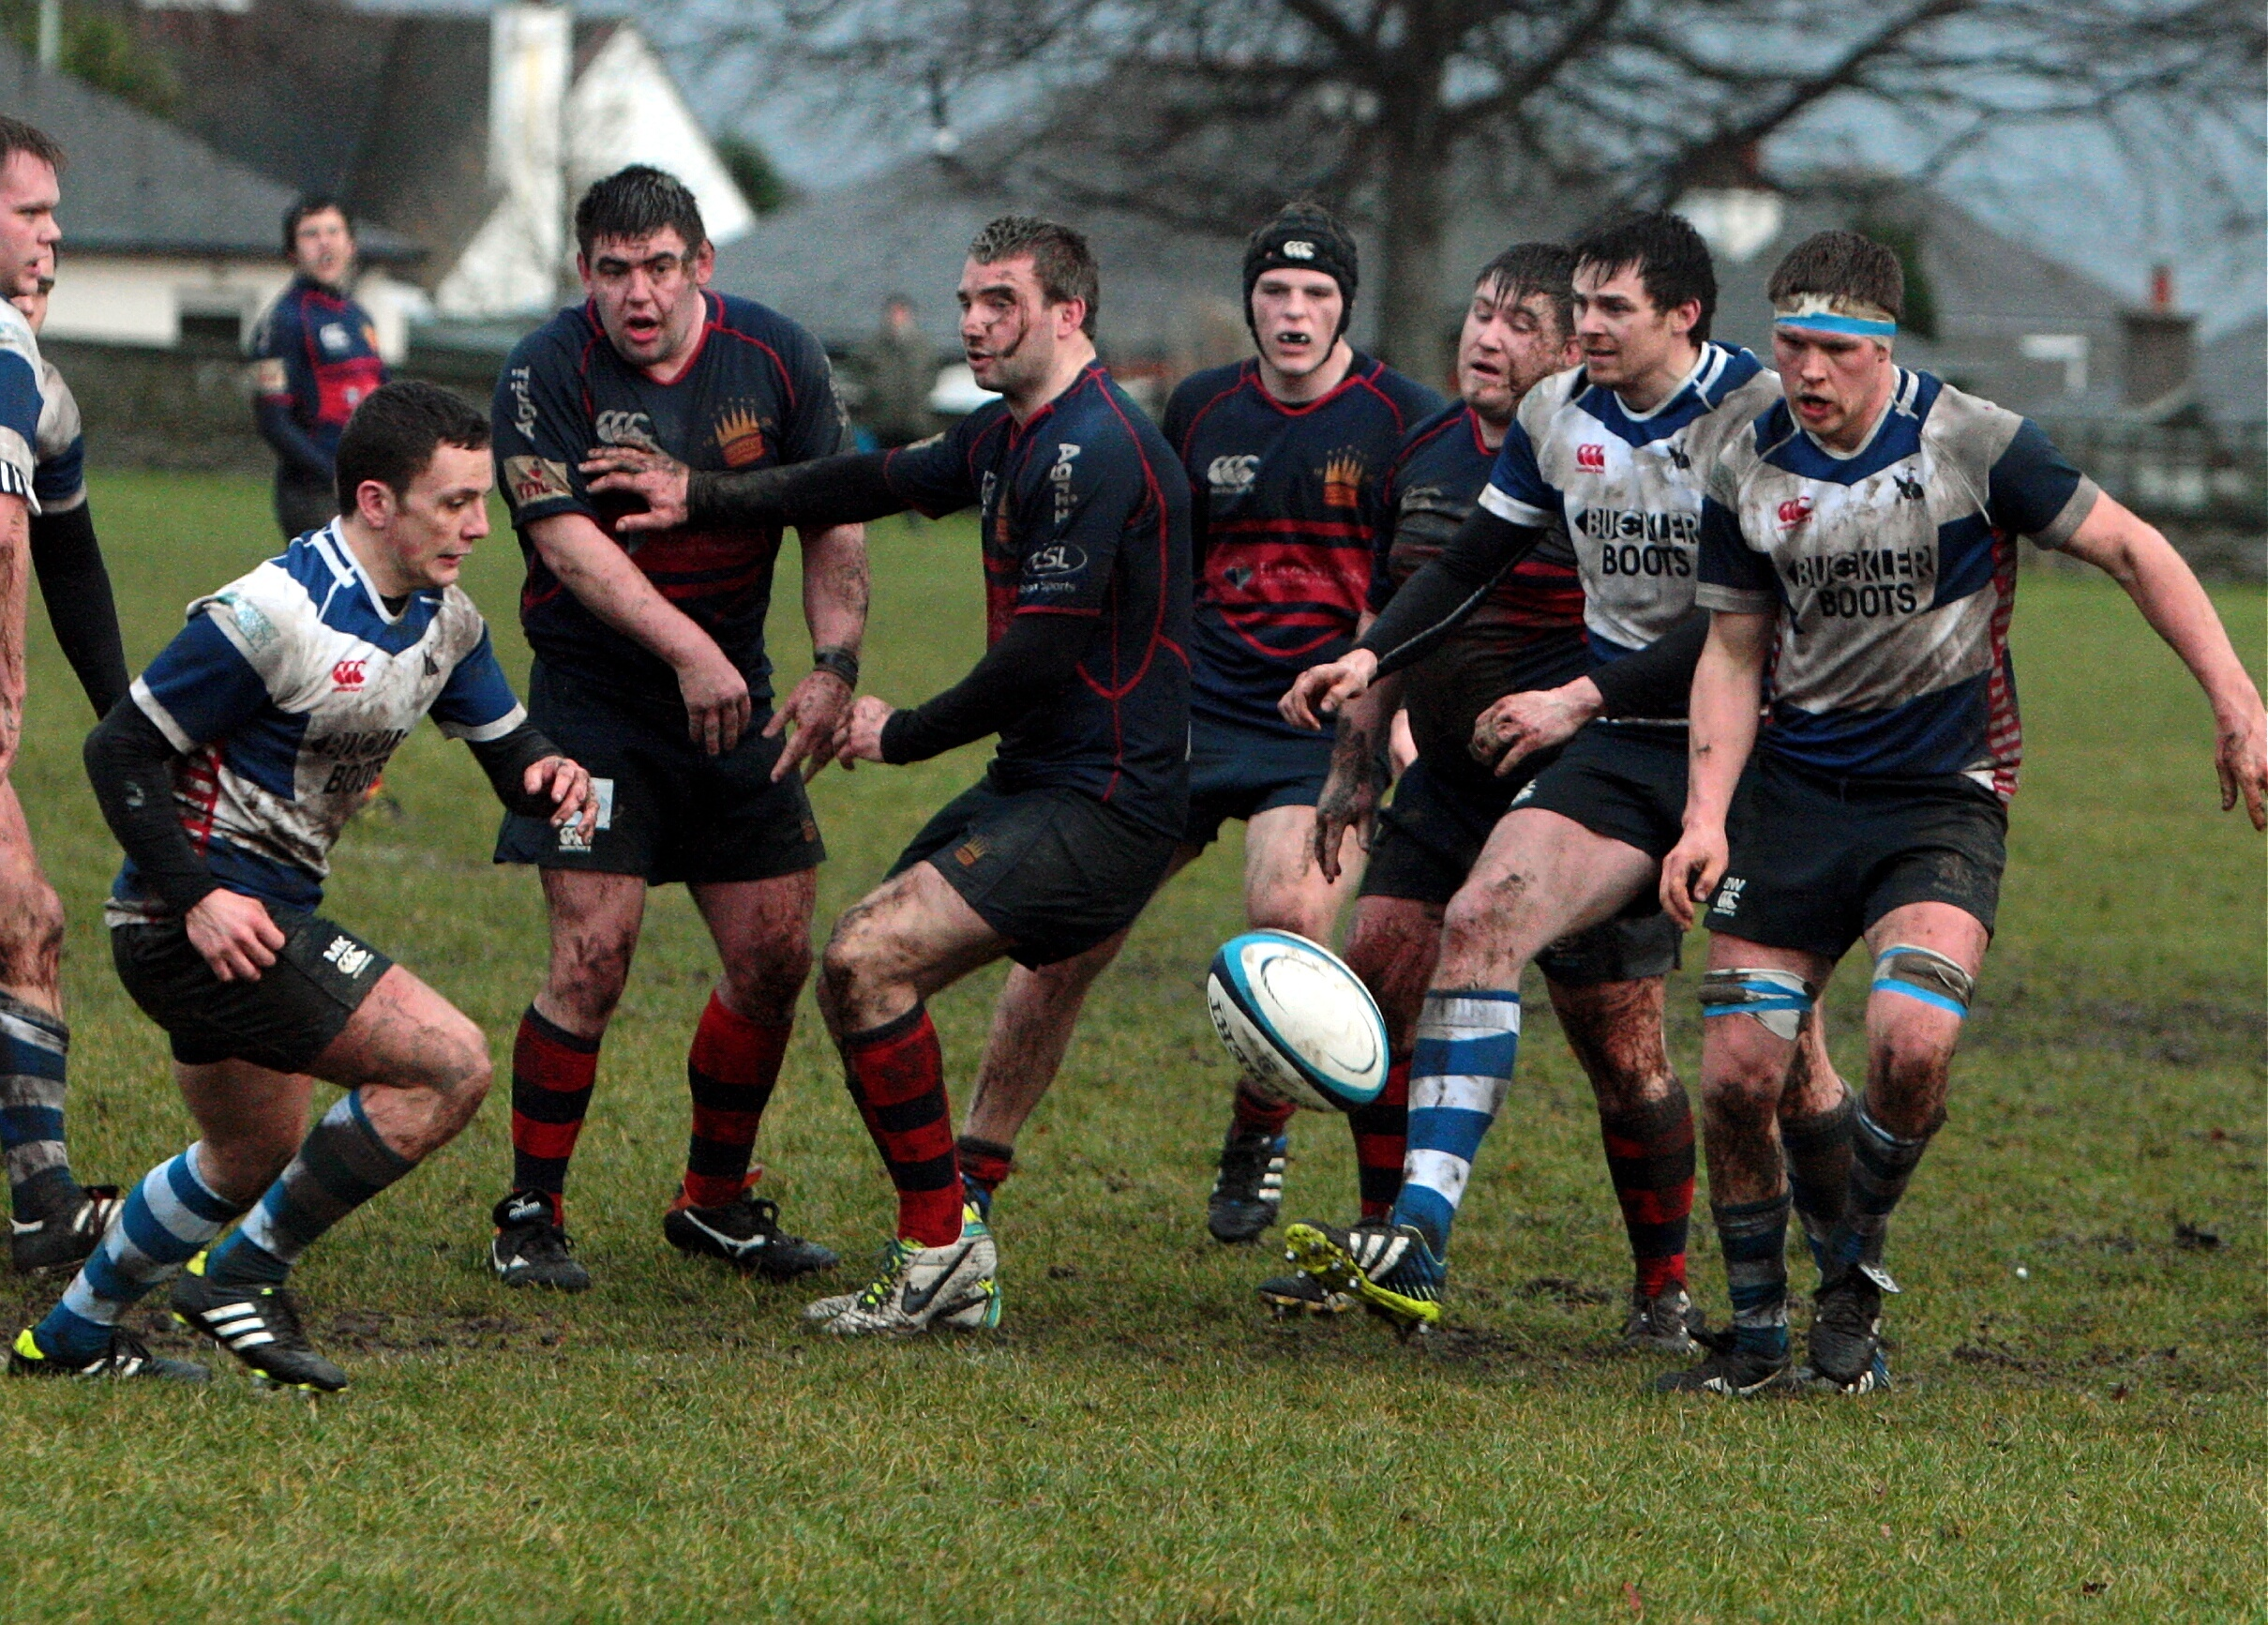 Dundee HSFP and Howe of Fife battled for league points and the Rankin Bowl at Mayfield.